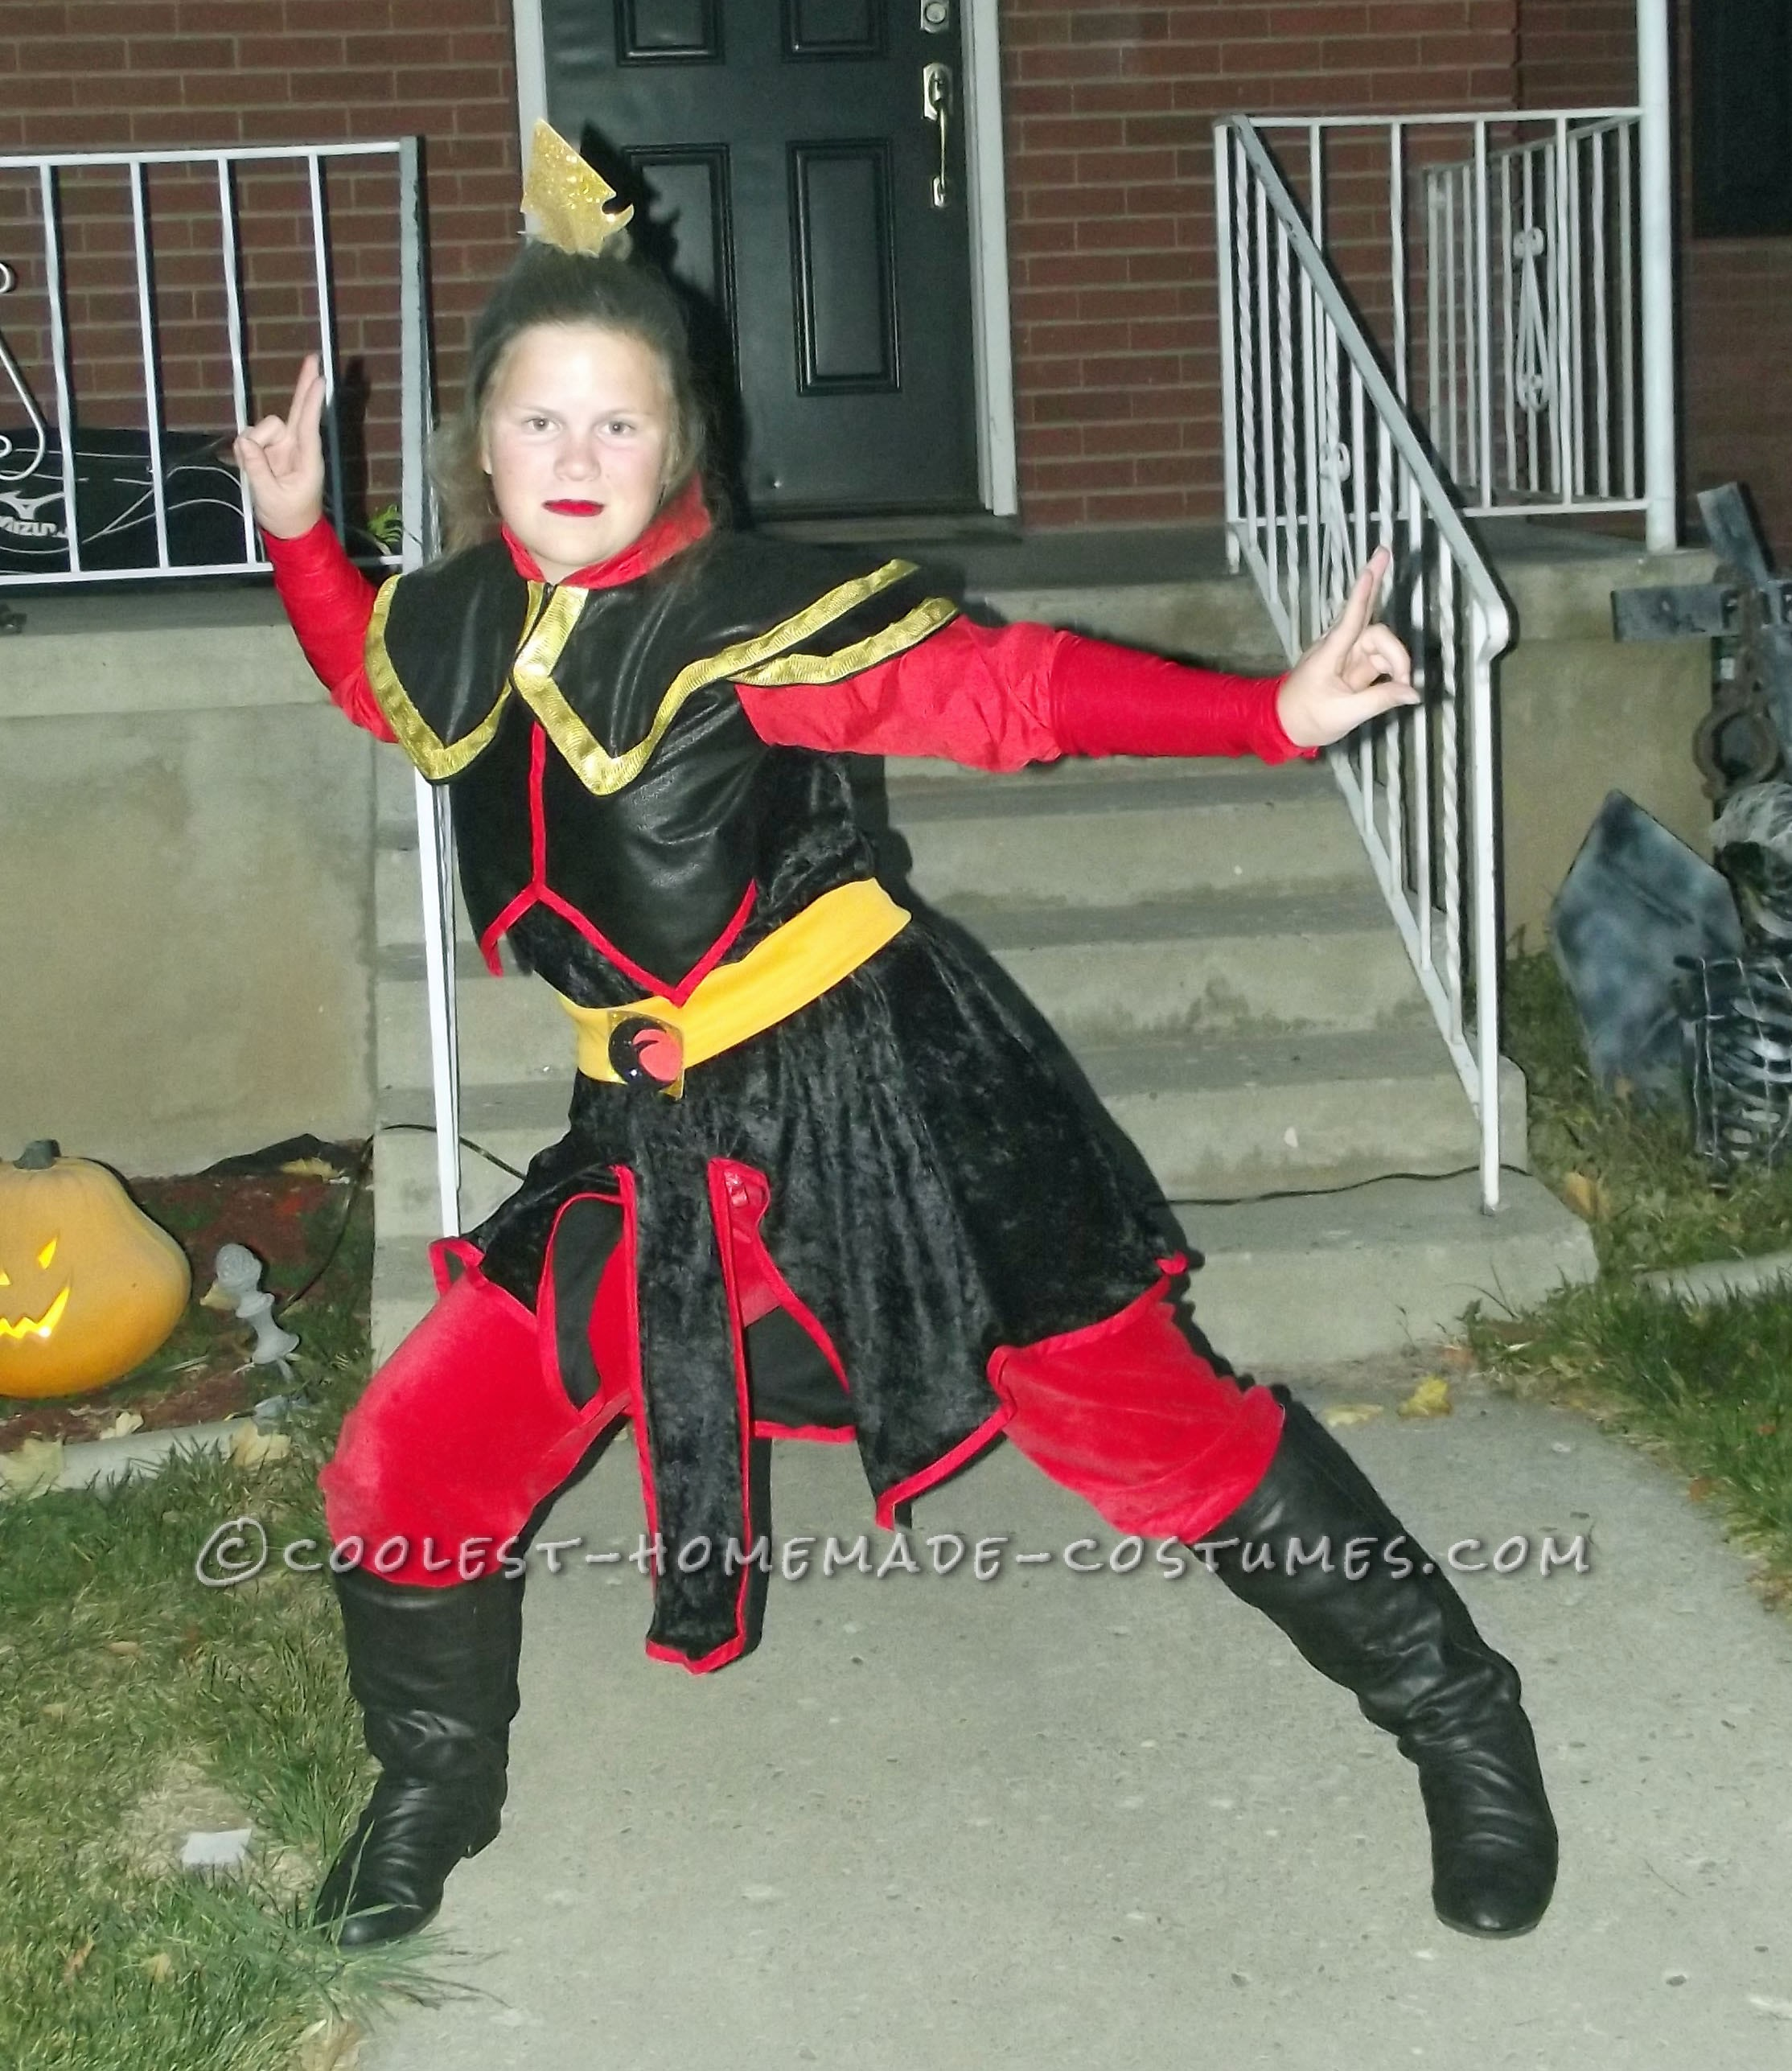 """My daughter loves Avatar, and I of course have no clue about it, but she made me make a costume of the """"fire bender"""" princess Azula?!?!I don't u"""